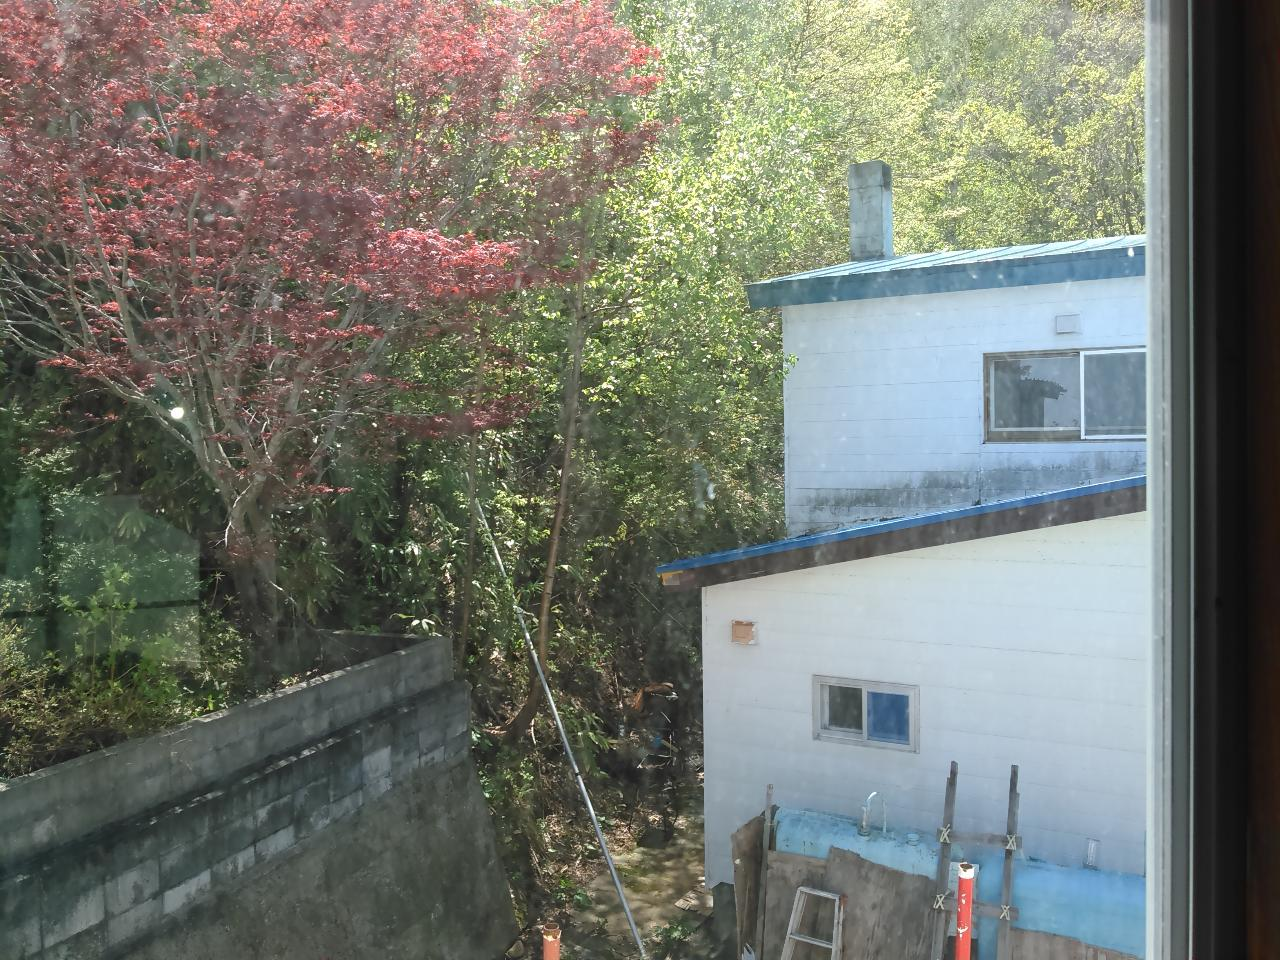 View_from_Stairs_window_lg